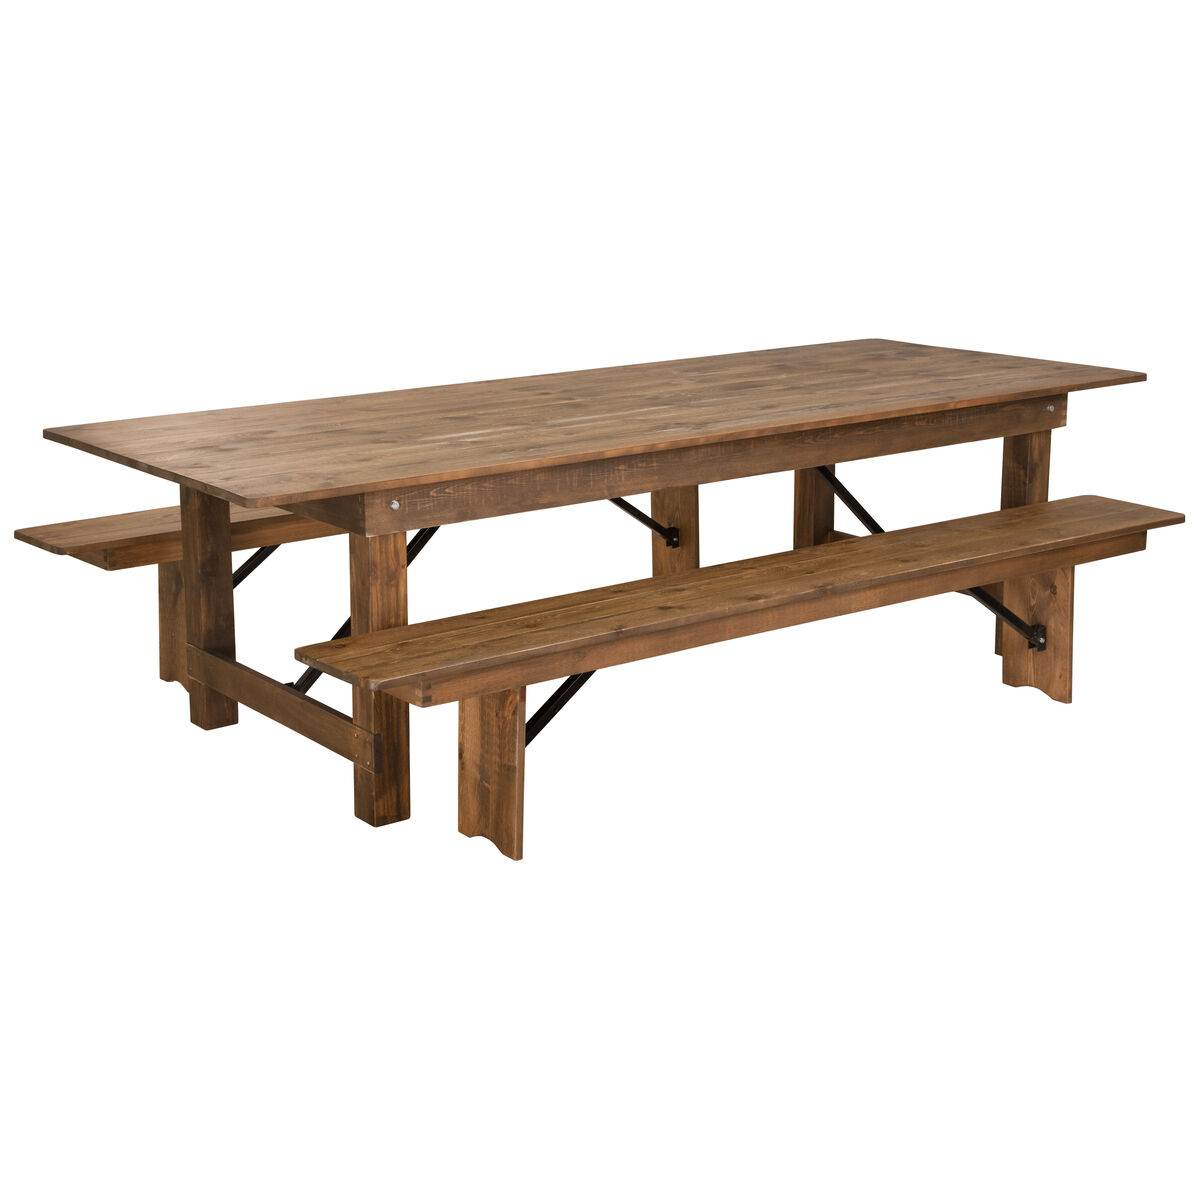 9x40 farm table2 bench set xa farm 6 gg foldingchairs4less our hercules series 9 x 40 antique rustic folding farm table and two watchthetrailerfo